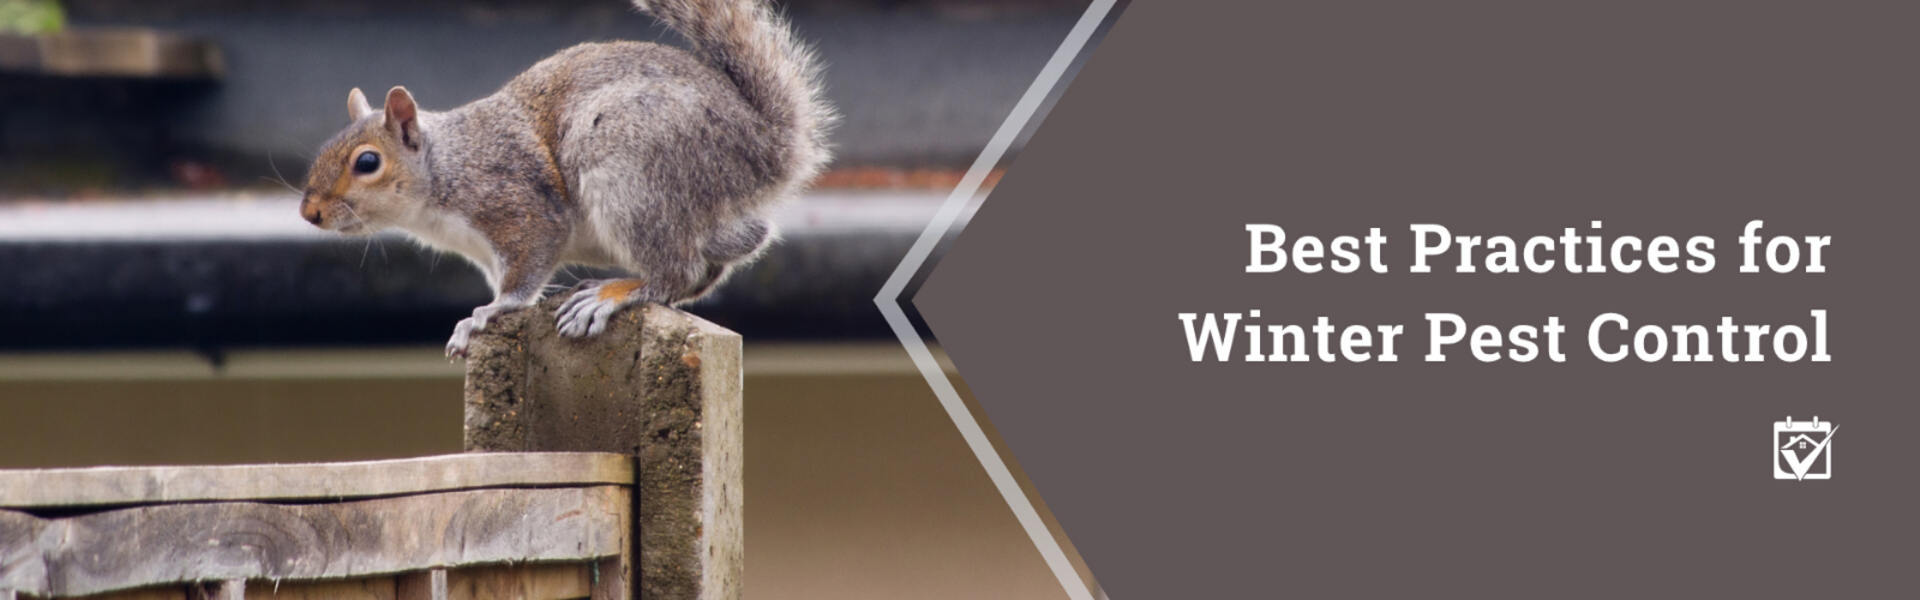 Best Practices for Winter Pest Control